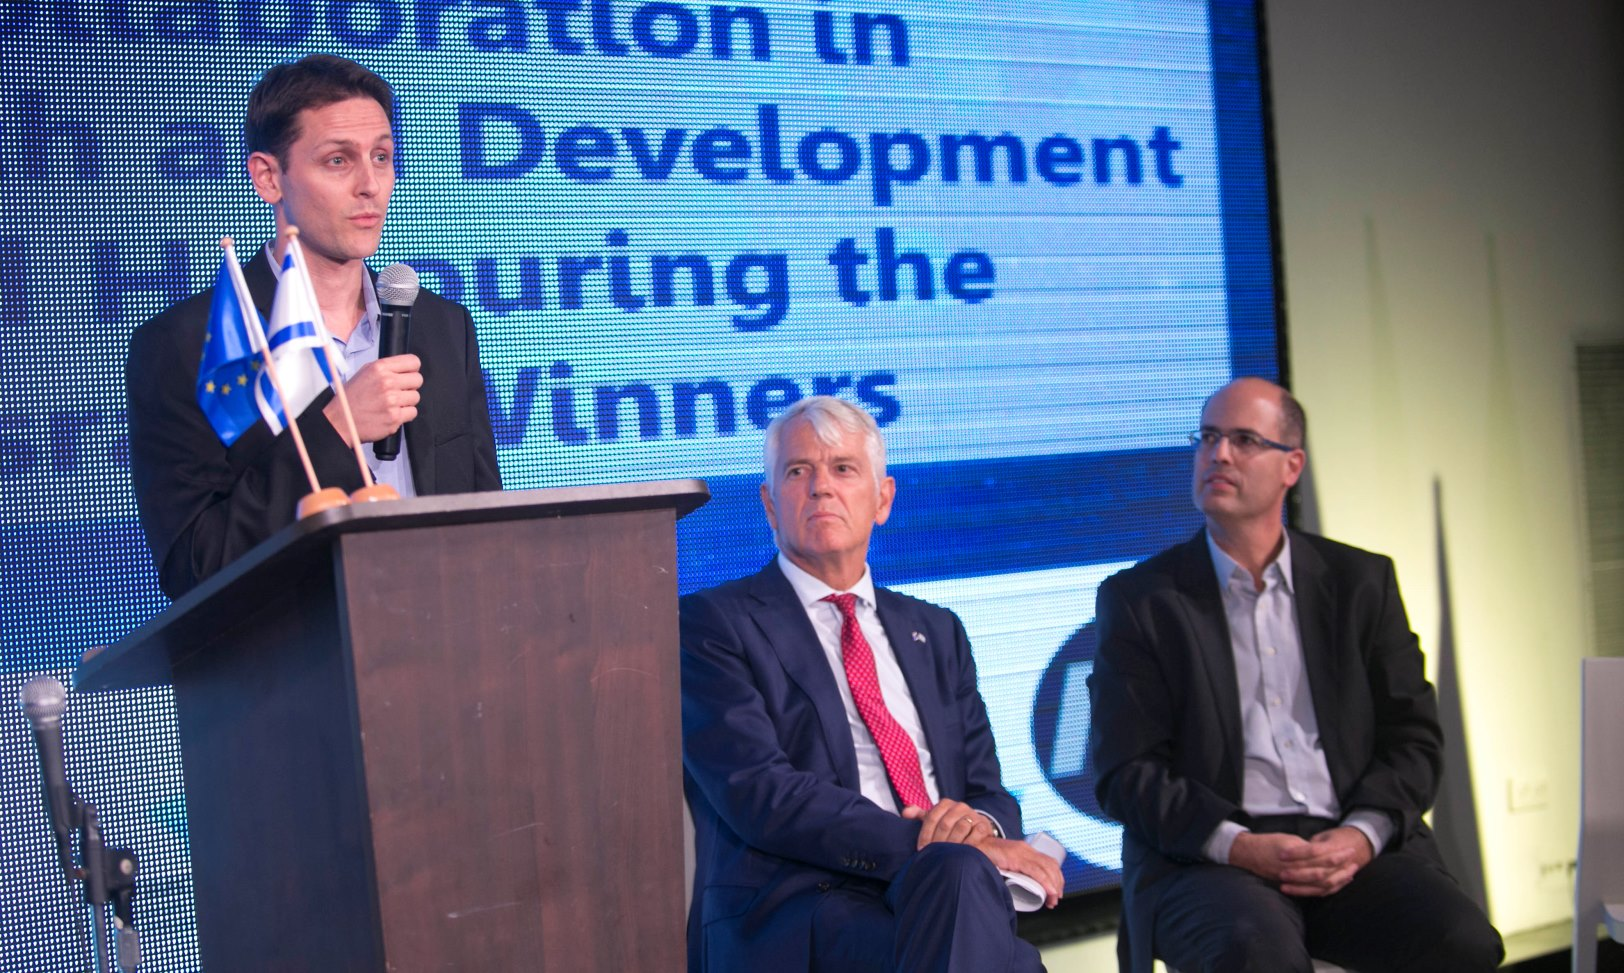 MeMed CEO Eran Eden speaking at the SME Instrument grant program finals in 2015. Next to him are Israeli Chief Scientist Avi Hasson, right, and Lars Faaborg-Andersen, EU ambassador to Israel. Photo courtesy of ISERD PR